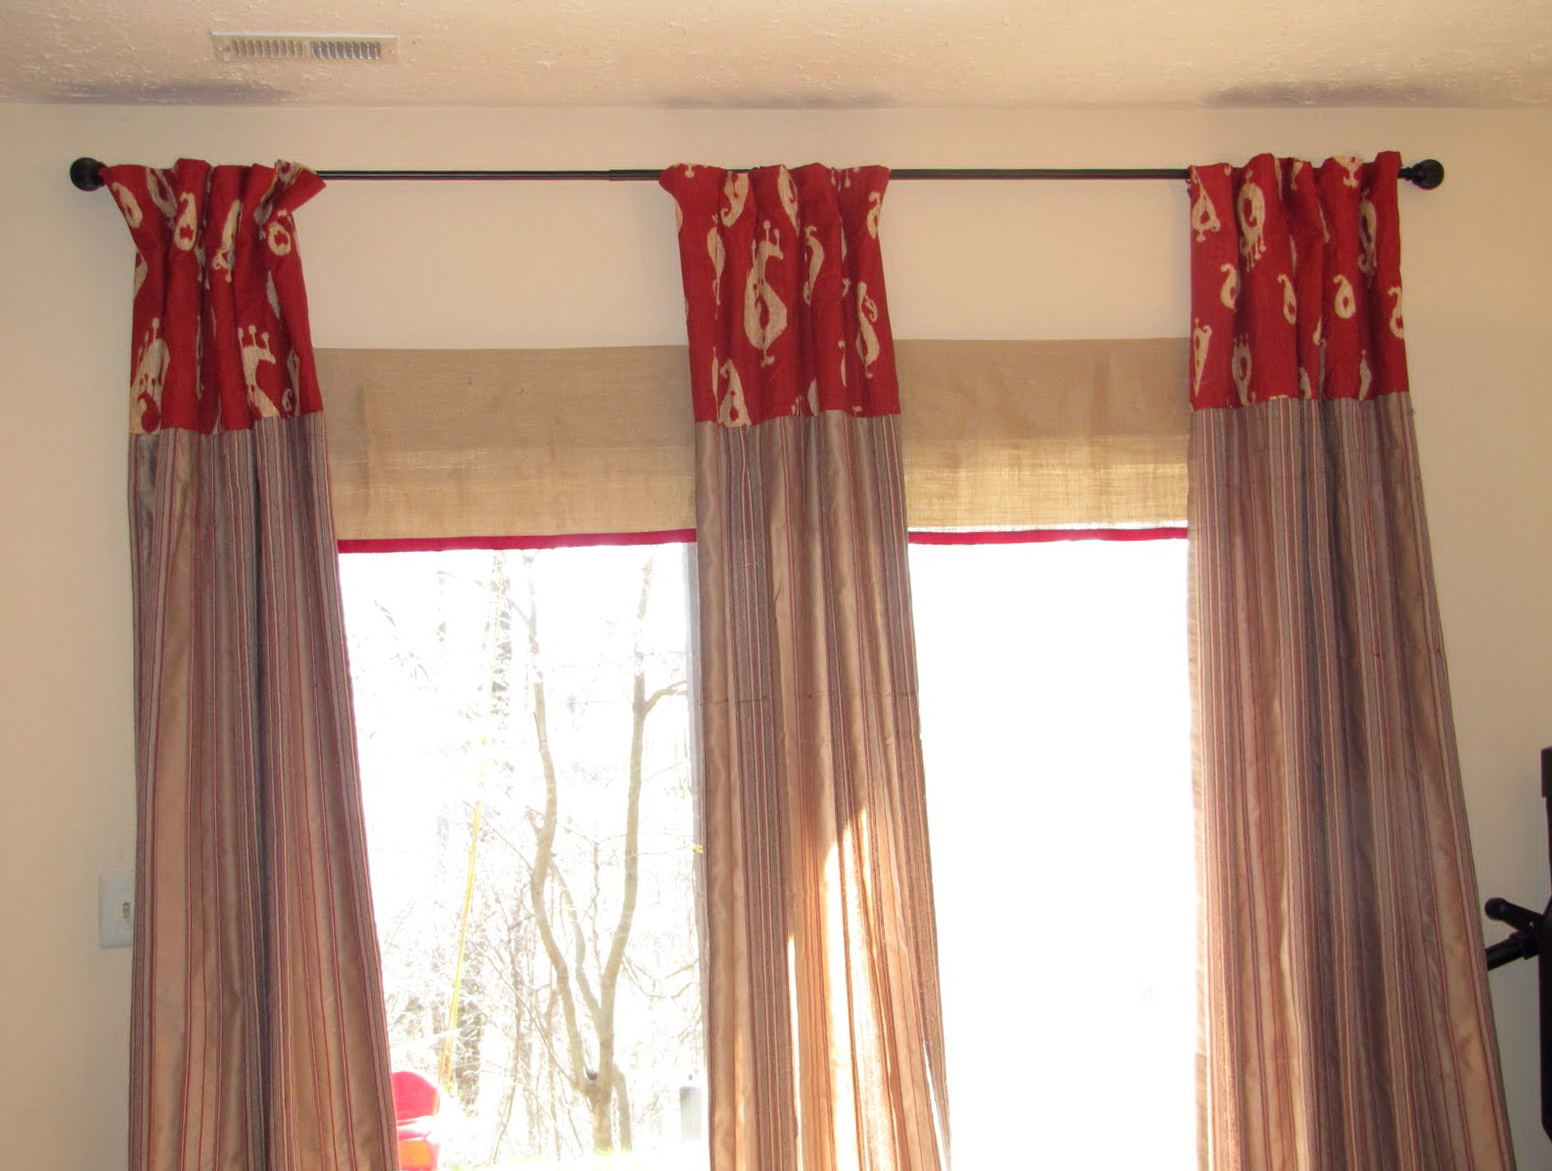 Outdoor Privacy Curtains Canada Home Design Ideas